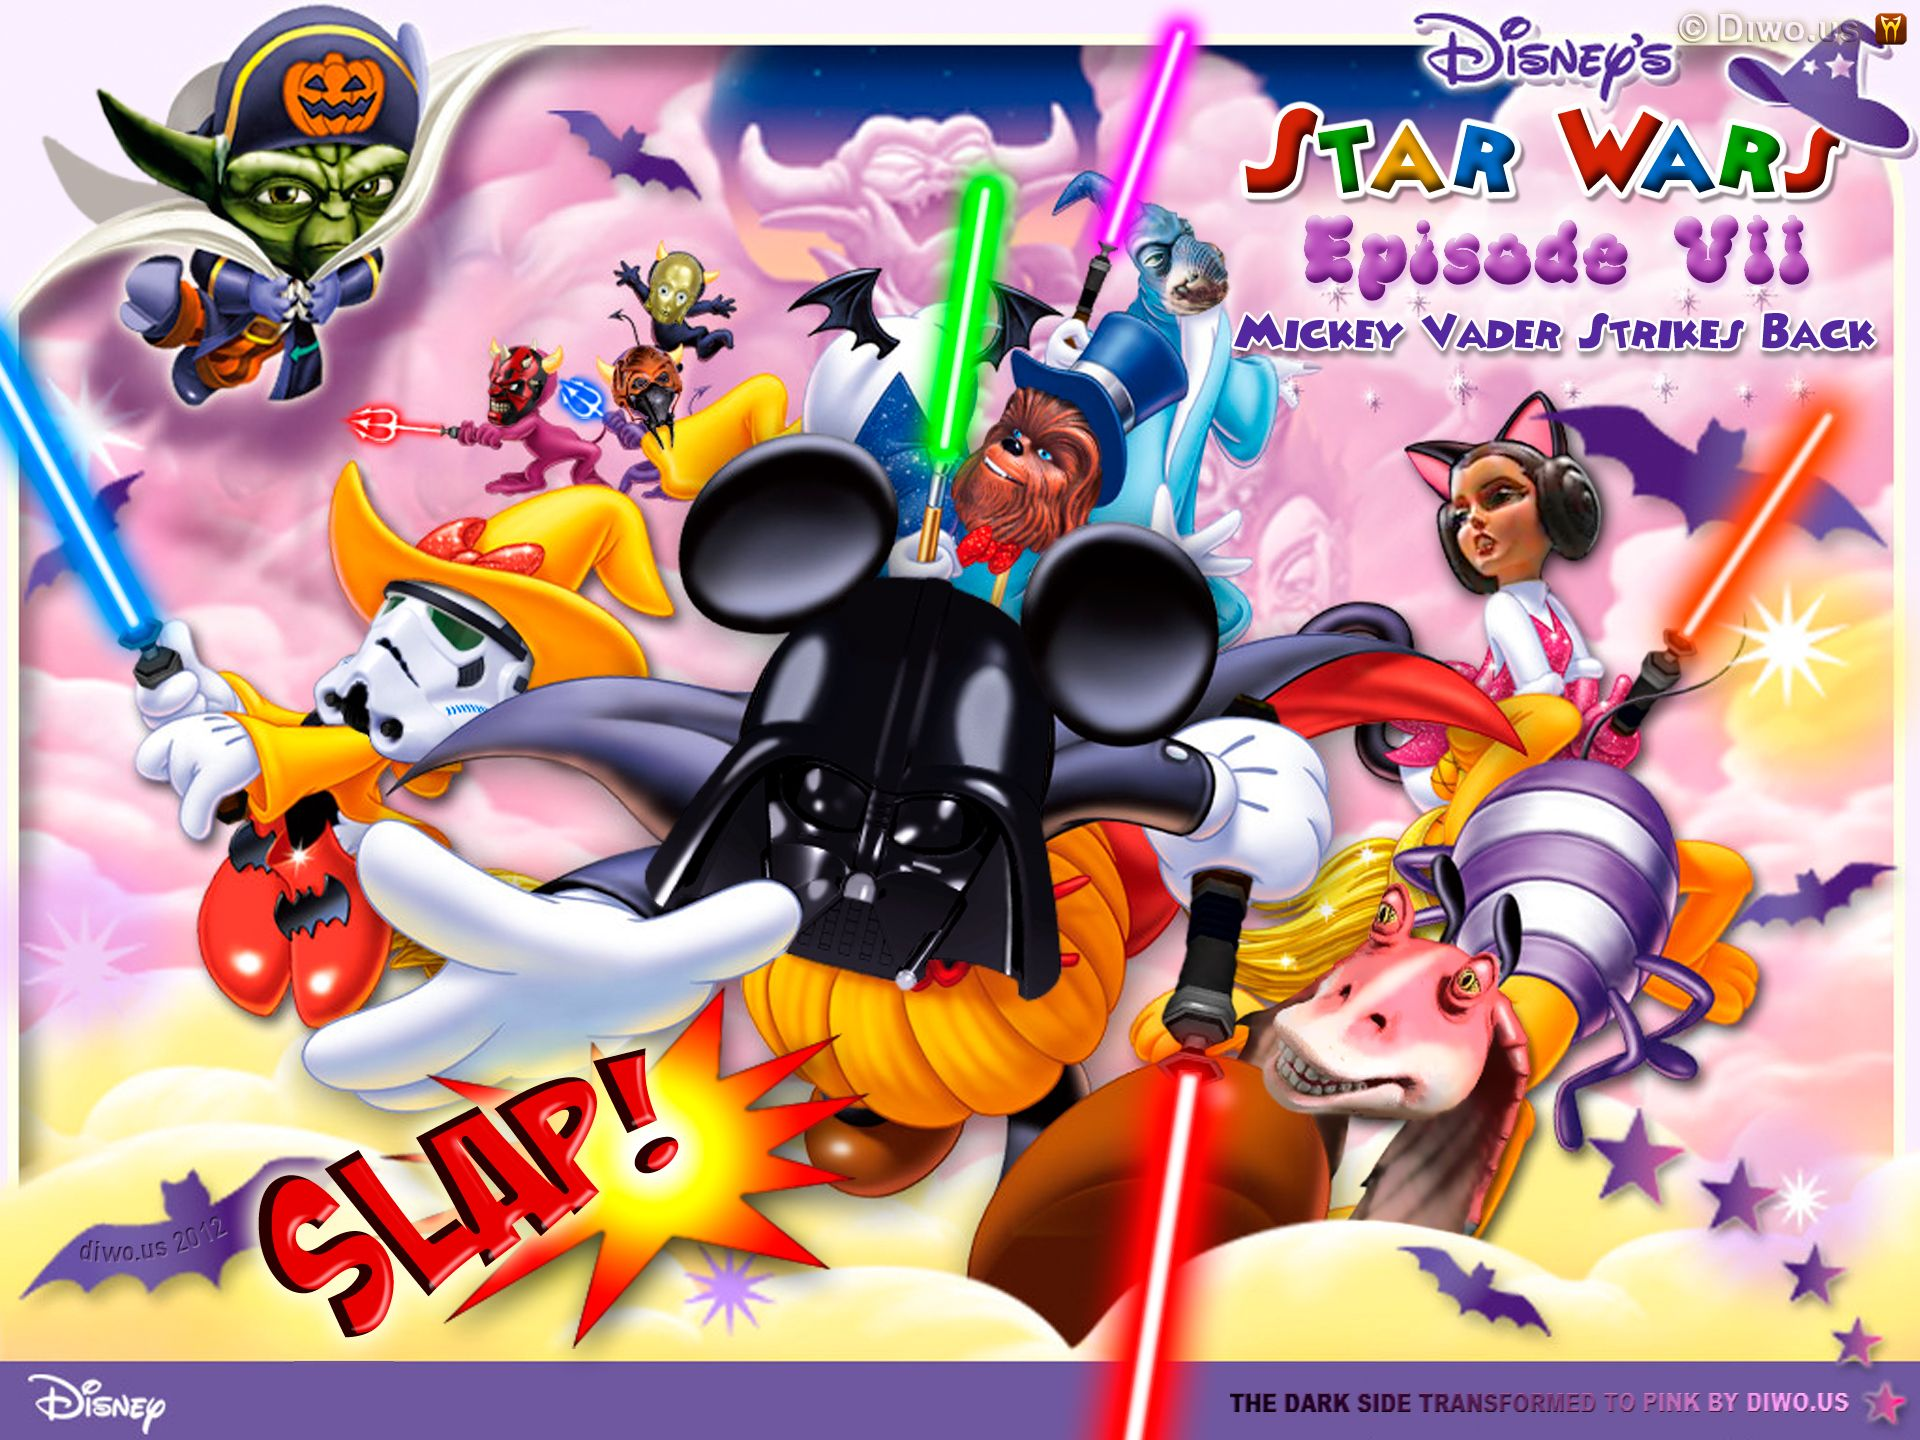 Diwous - Star Wars - Epizode VII 7 - Mickey Vader Strikes Back, acquisition, C-3PO, Chewbacca, Dark Side, Darth Maul, Darth Vader, Duck Donald, humor, Jar Jar Bings, lightsaber, Lucasfilm, Master Yoda, Mickey Mouse, Minnie, Pink Side, Plo Koon, pozadí, Princess Leia, Stormtrooper, tapeta, The Force Awakens, The Walt Disney Company, vtip, Watto